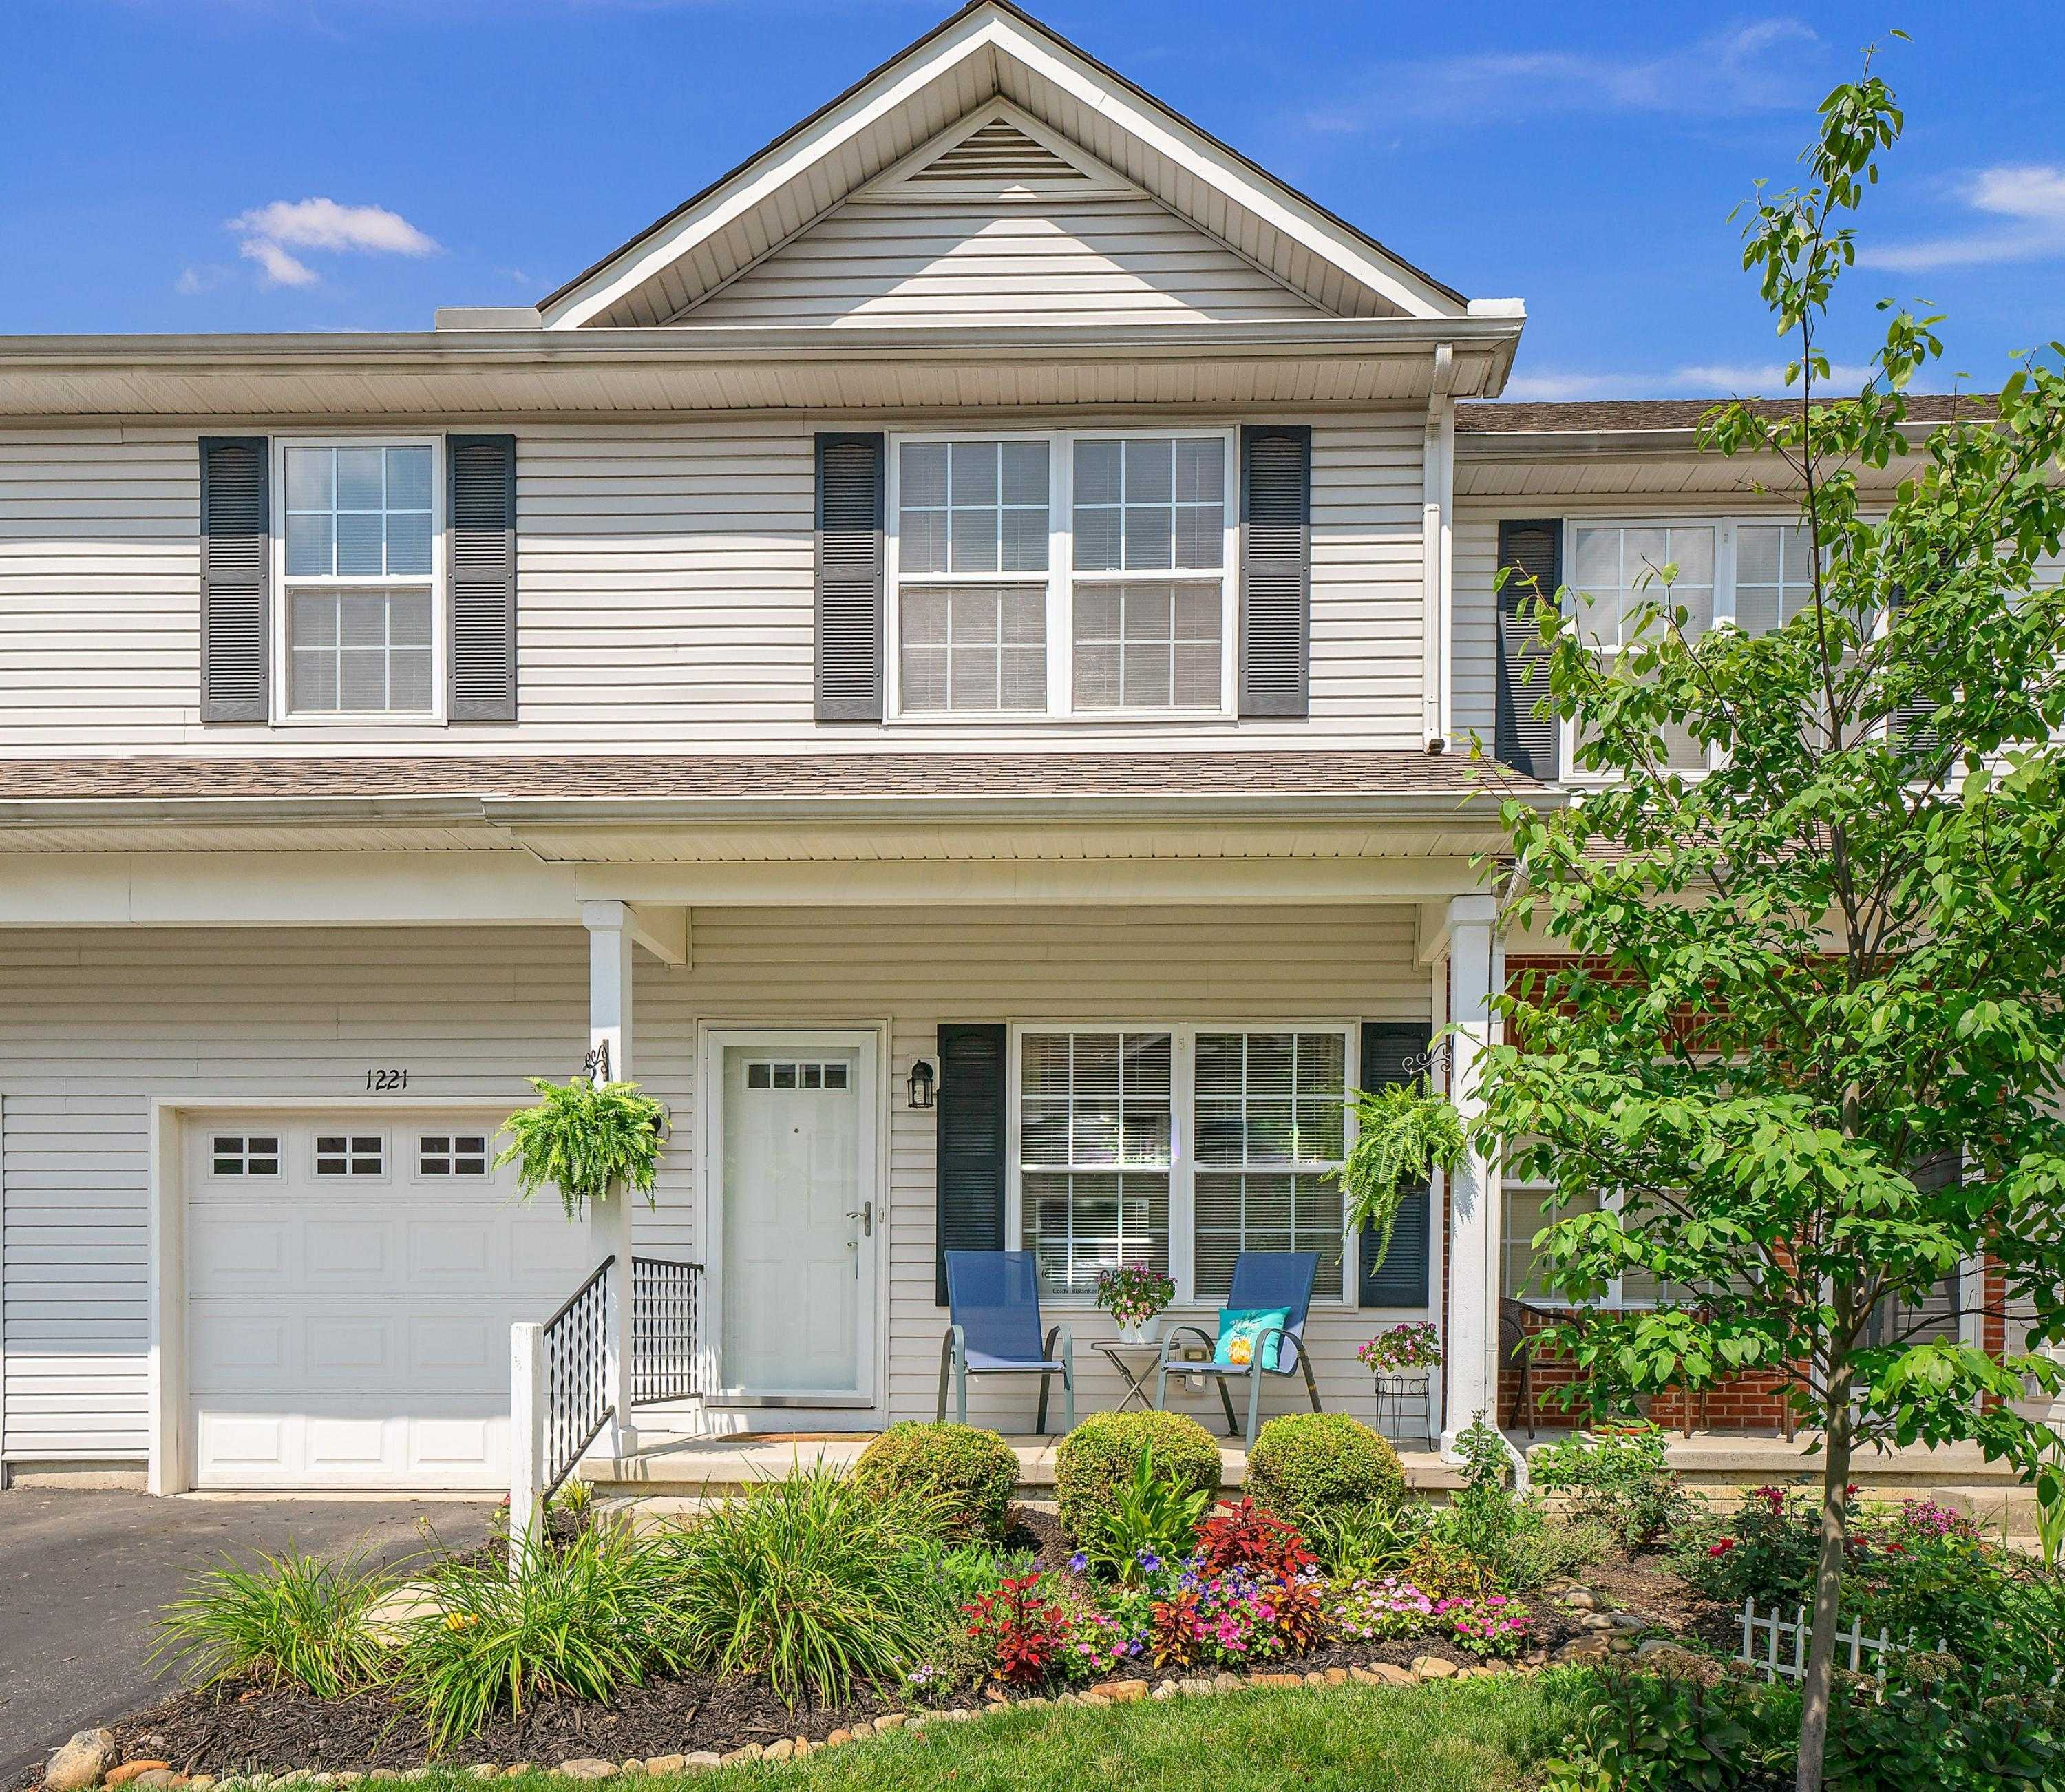 Pleasing Homes For Sale In Gahanna Cam Taylor Realtors Home Interior And Landscaping Dextoversignezvosmurscom